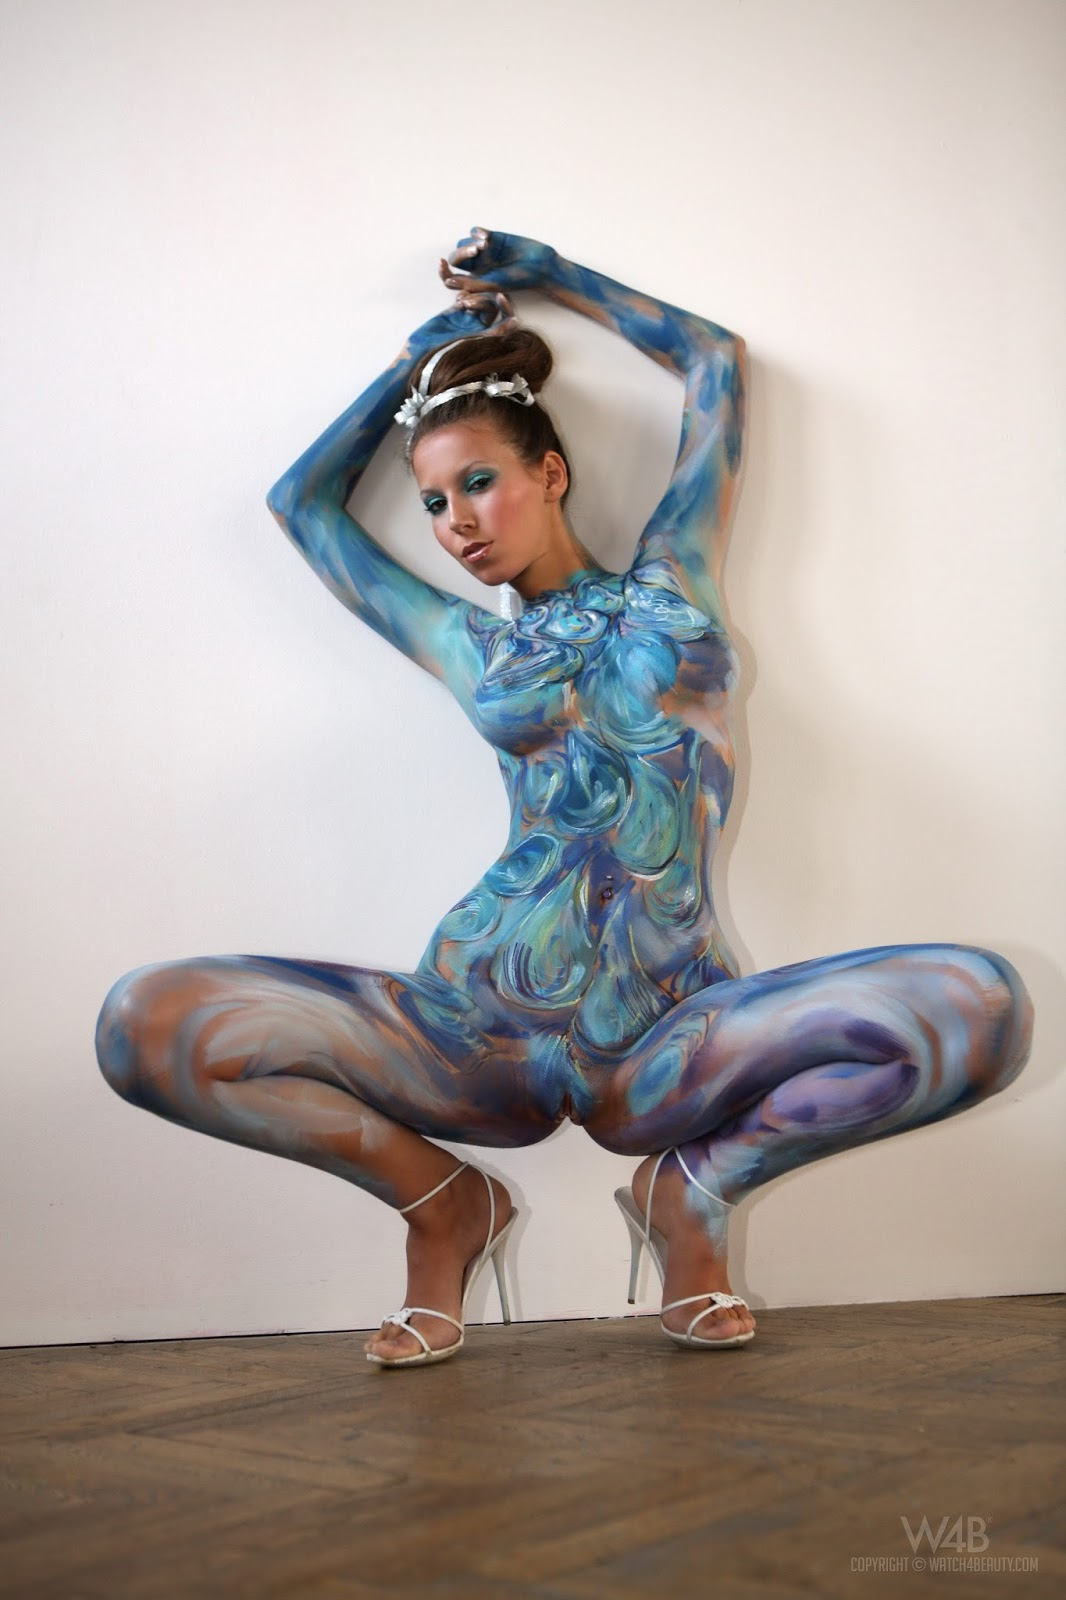 Bodypaint sex vulva wallpapper nackt nerdy sister